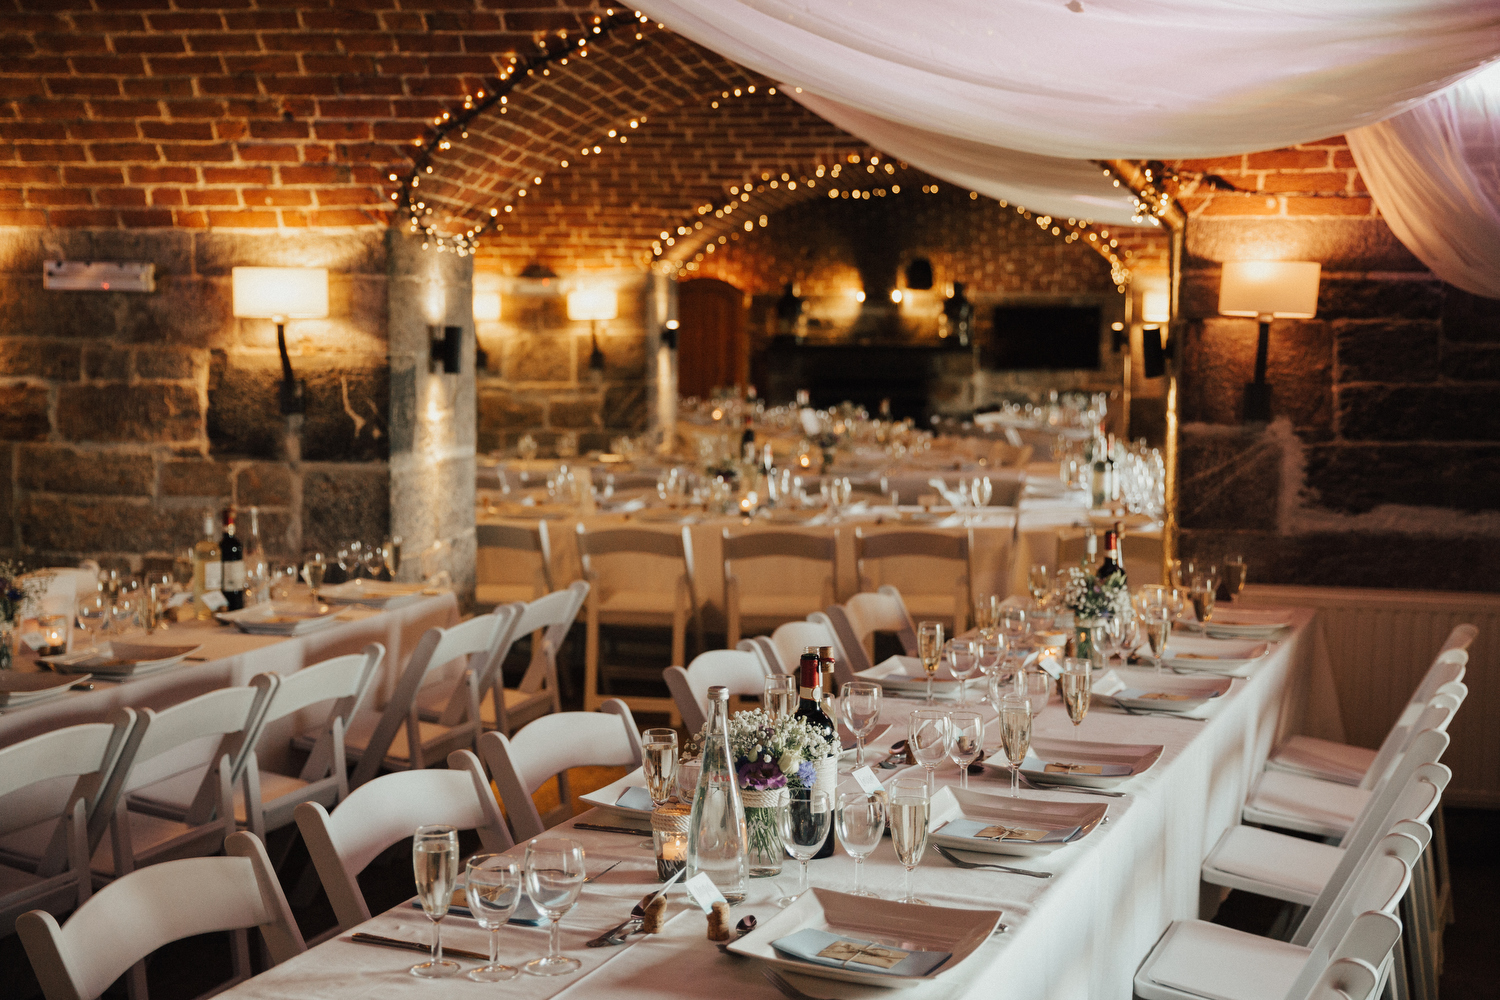 Stunning wedding reception at Polhawn Fort in Cornwall